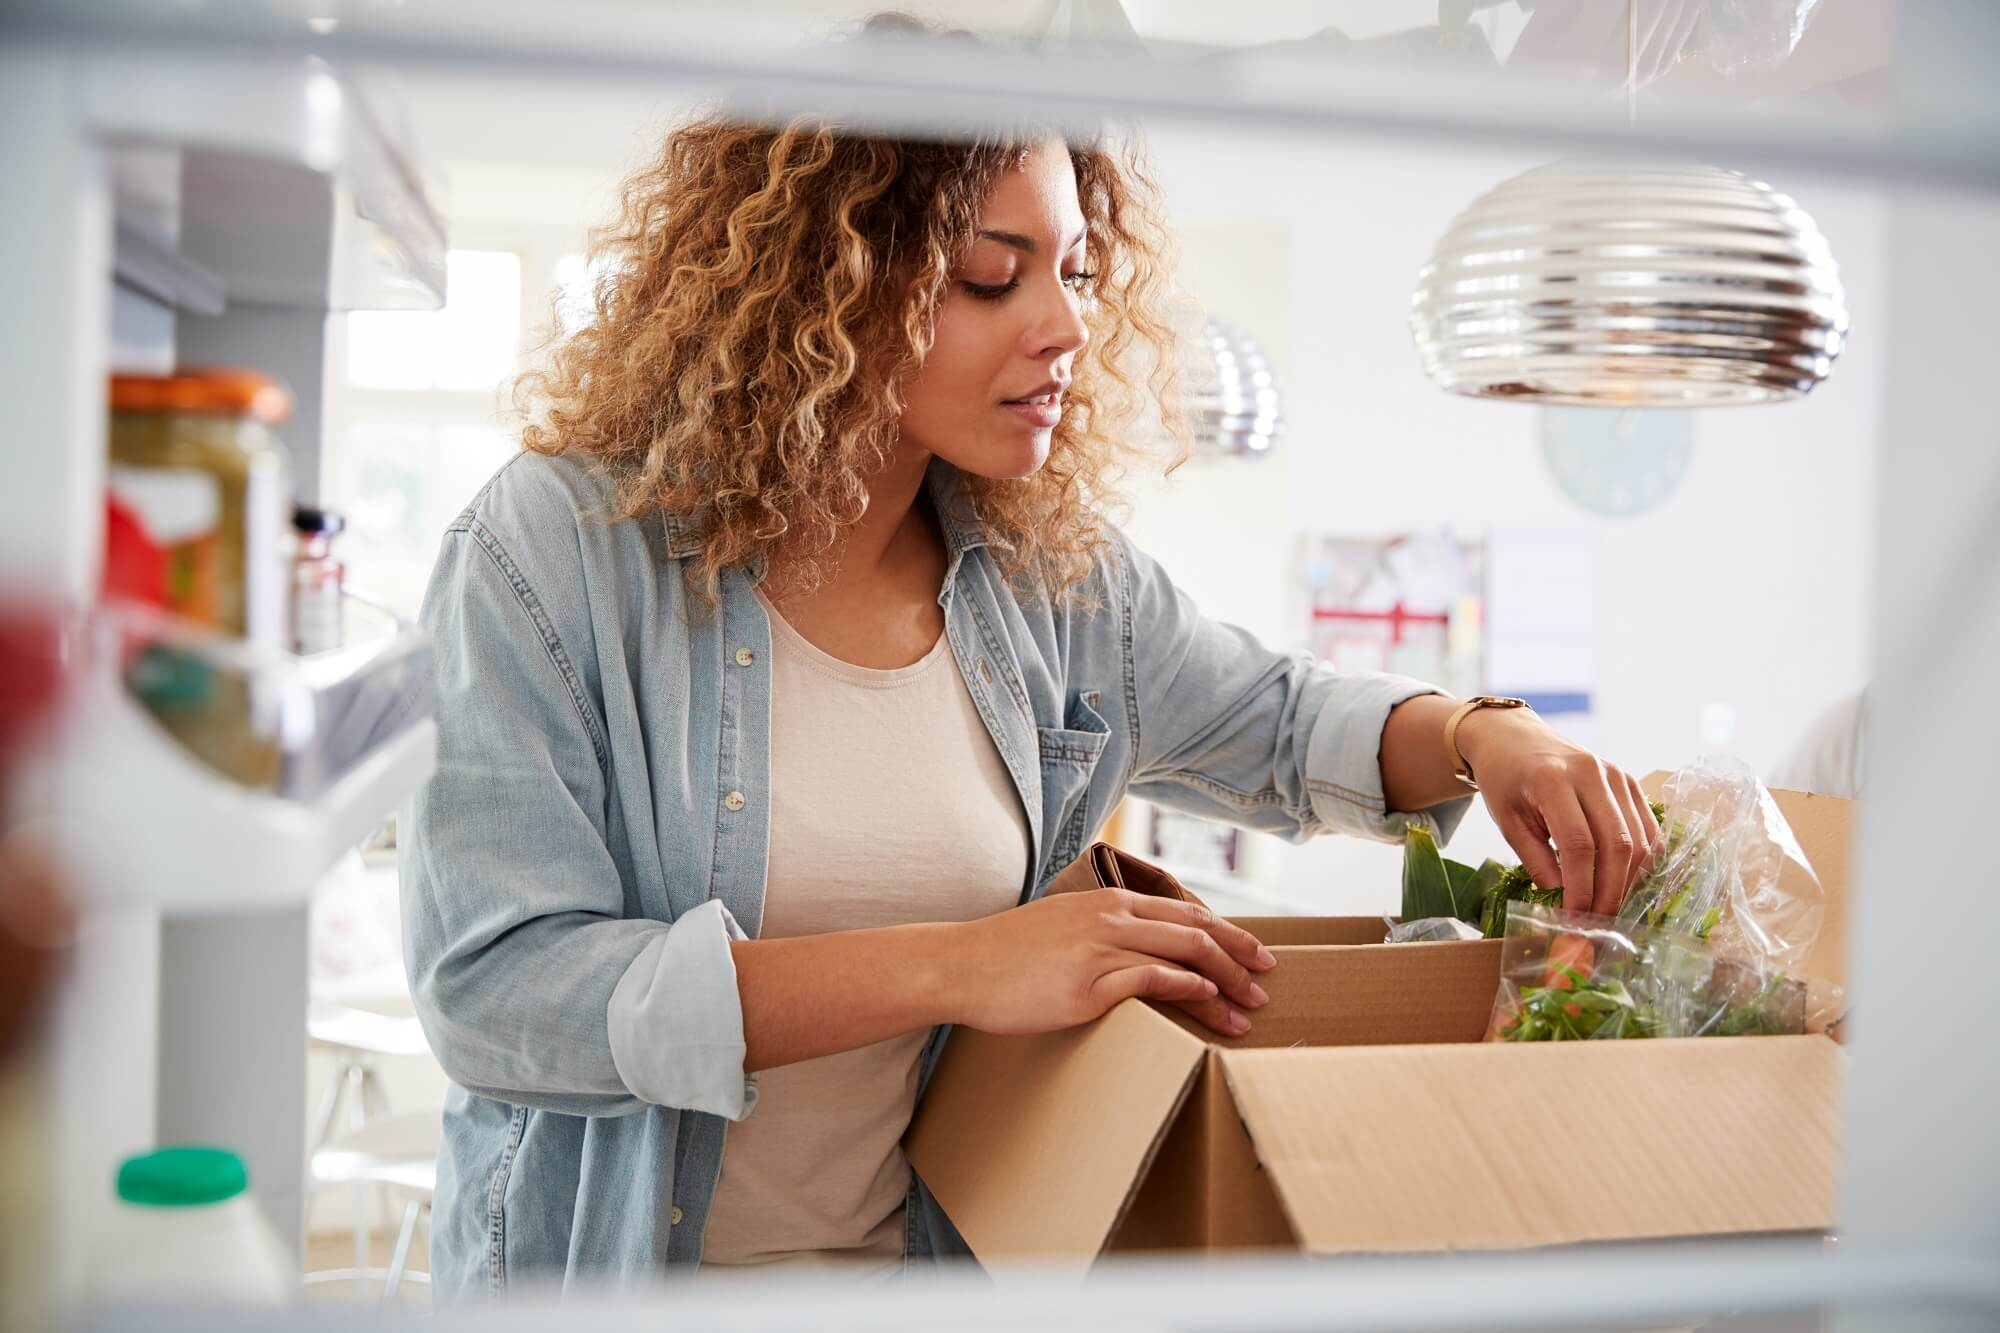 View Looking Out From Inside Of Refrigerator As Woman Unpacks Meal kit